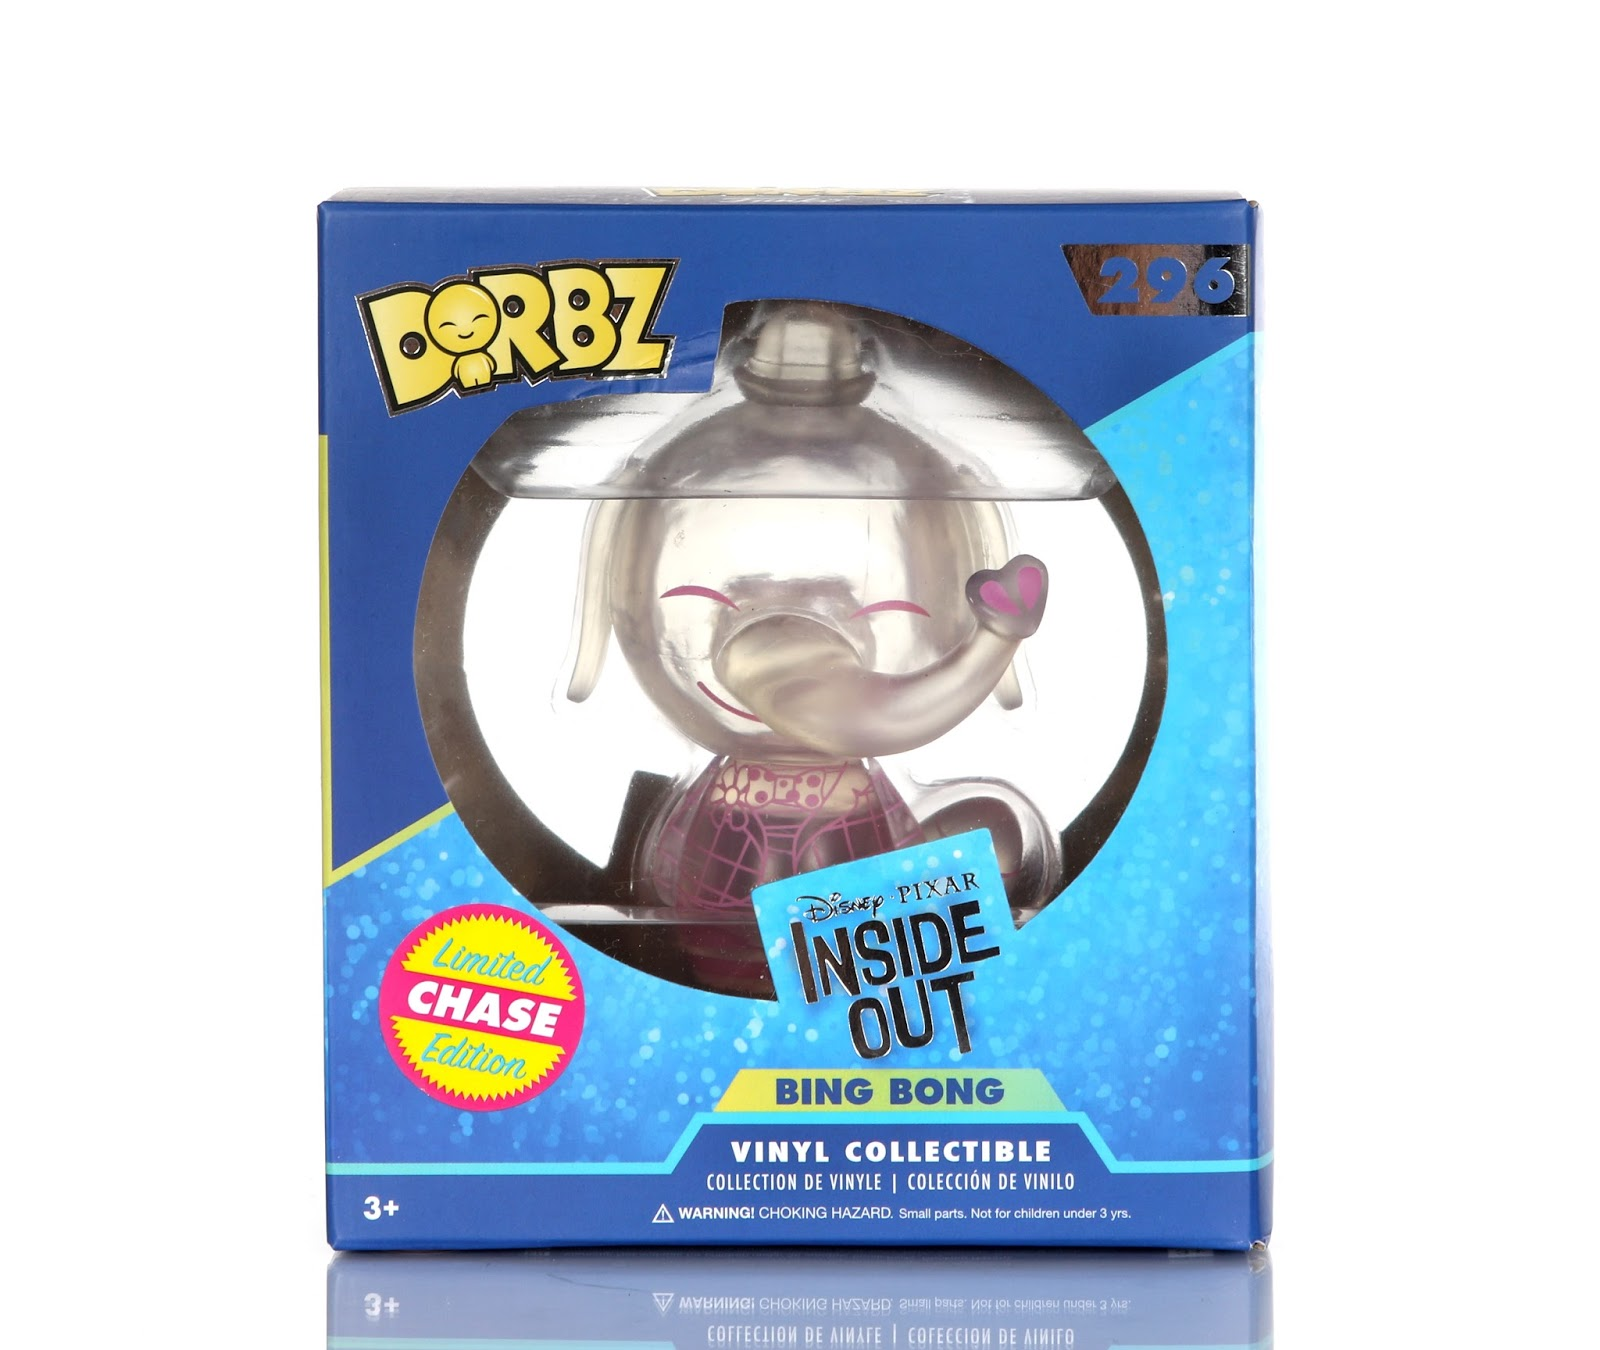 Inside Out Bing Bong Dorbz Clear Limited Chase Edition